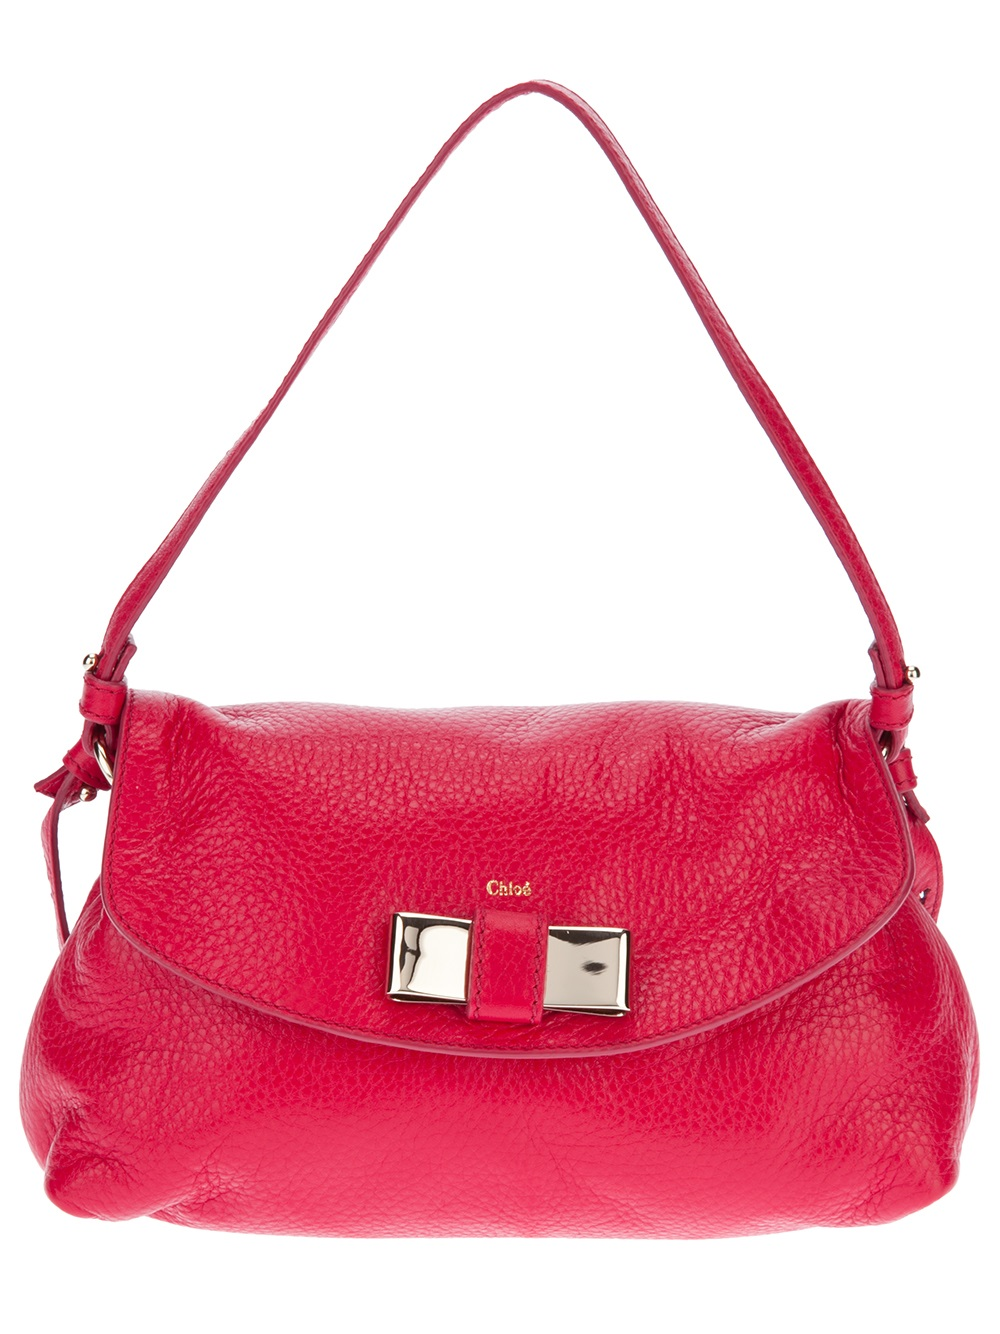 knock off chloe bag - chloe lily crossbody bag, chloe online